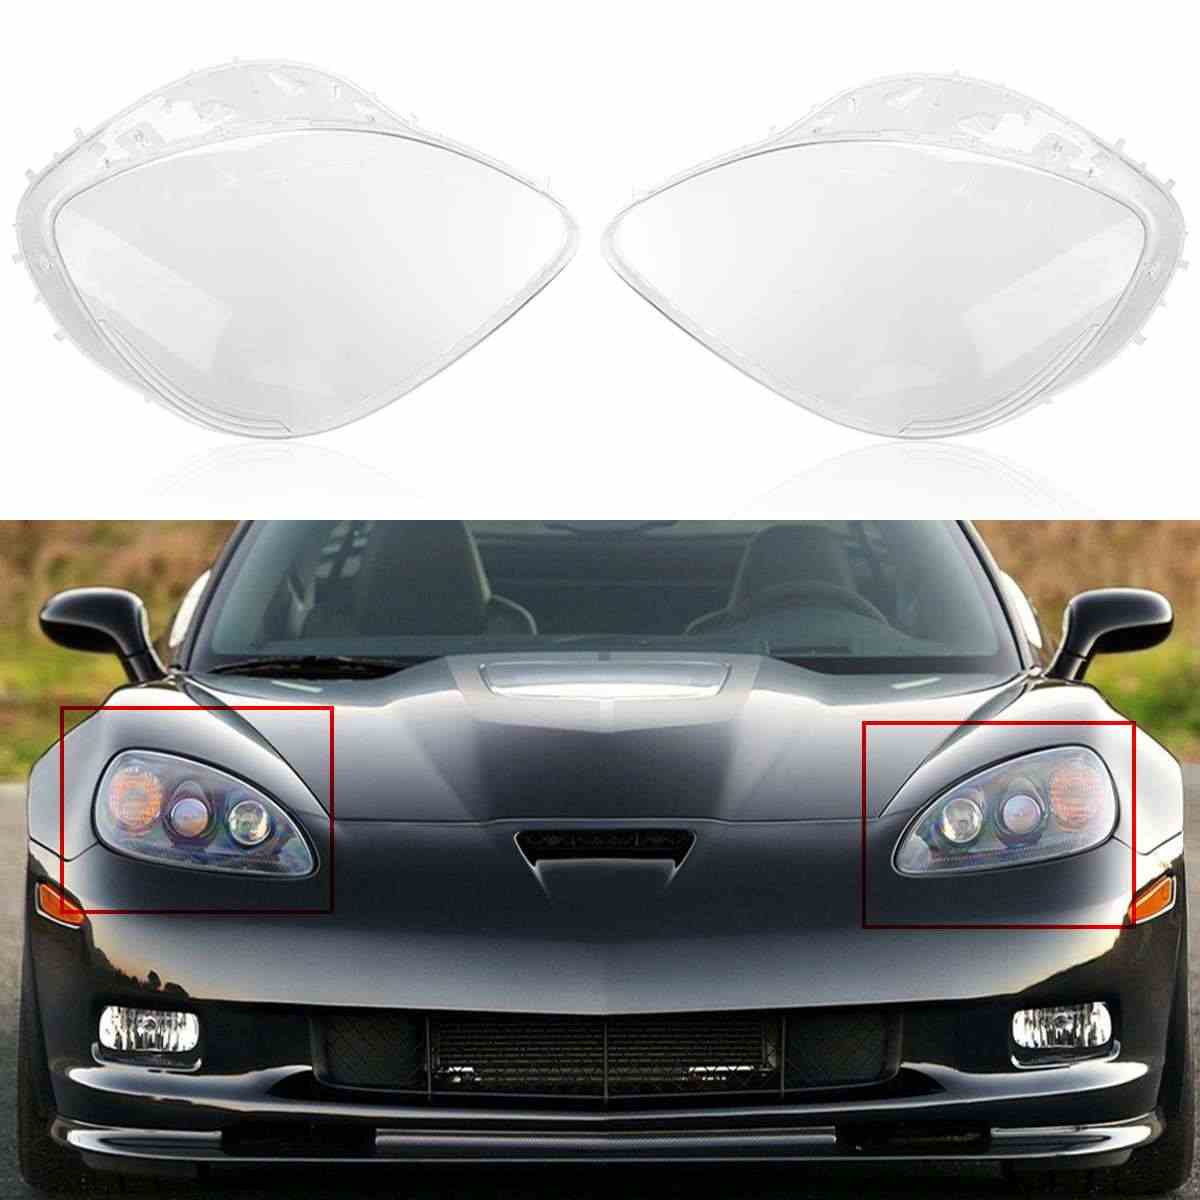 1Pair Headlight Replacement Lens Driver Passenger Side For Corvette C6 2005 2006 2007 2008 2009 2010 2011 2012 2013